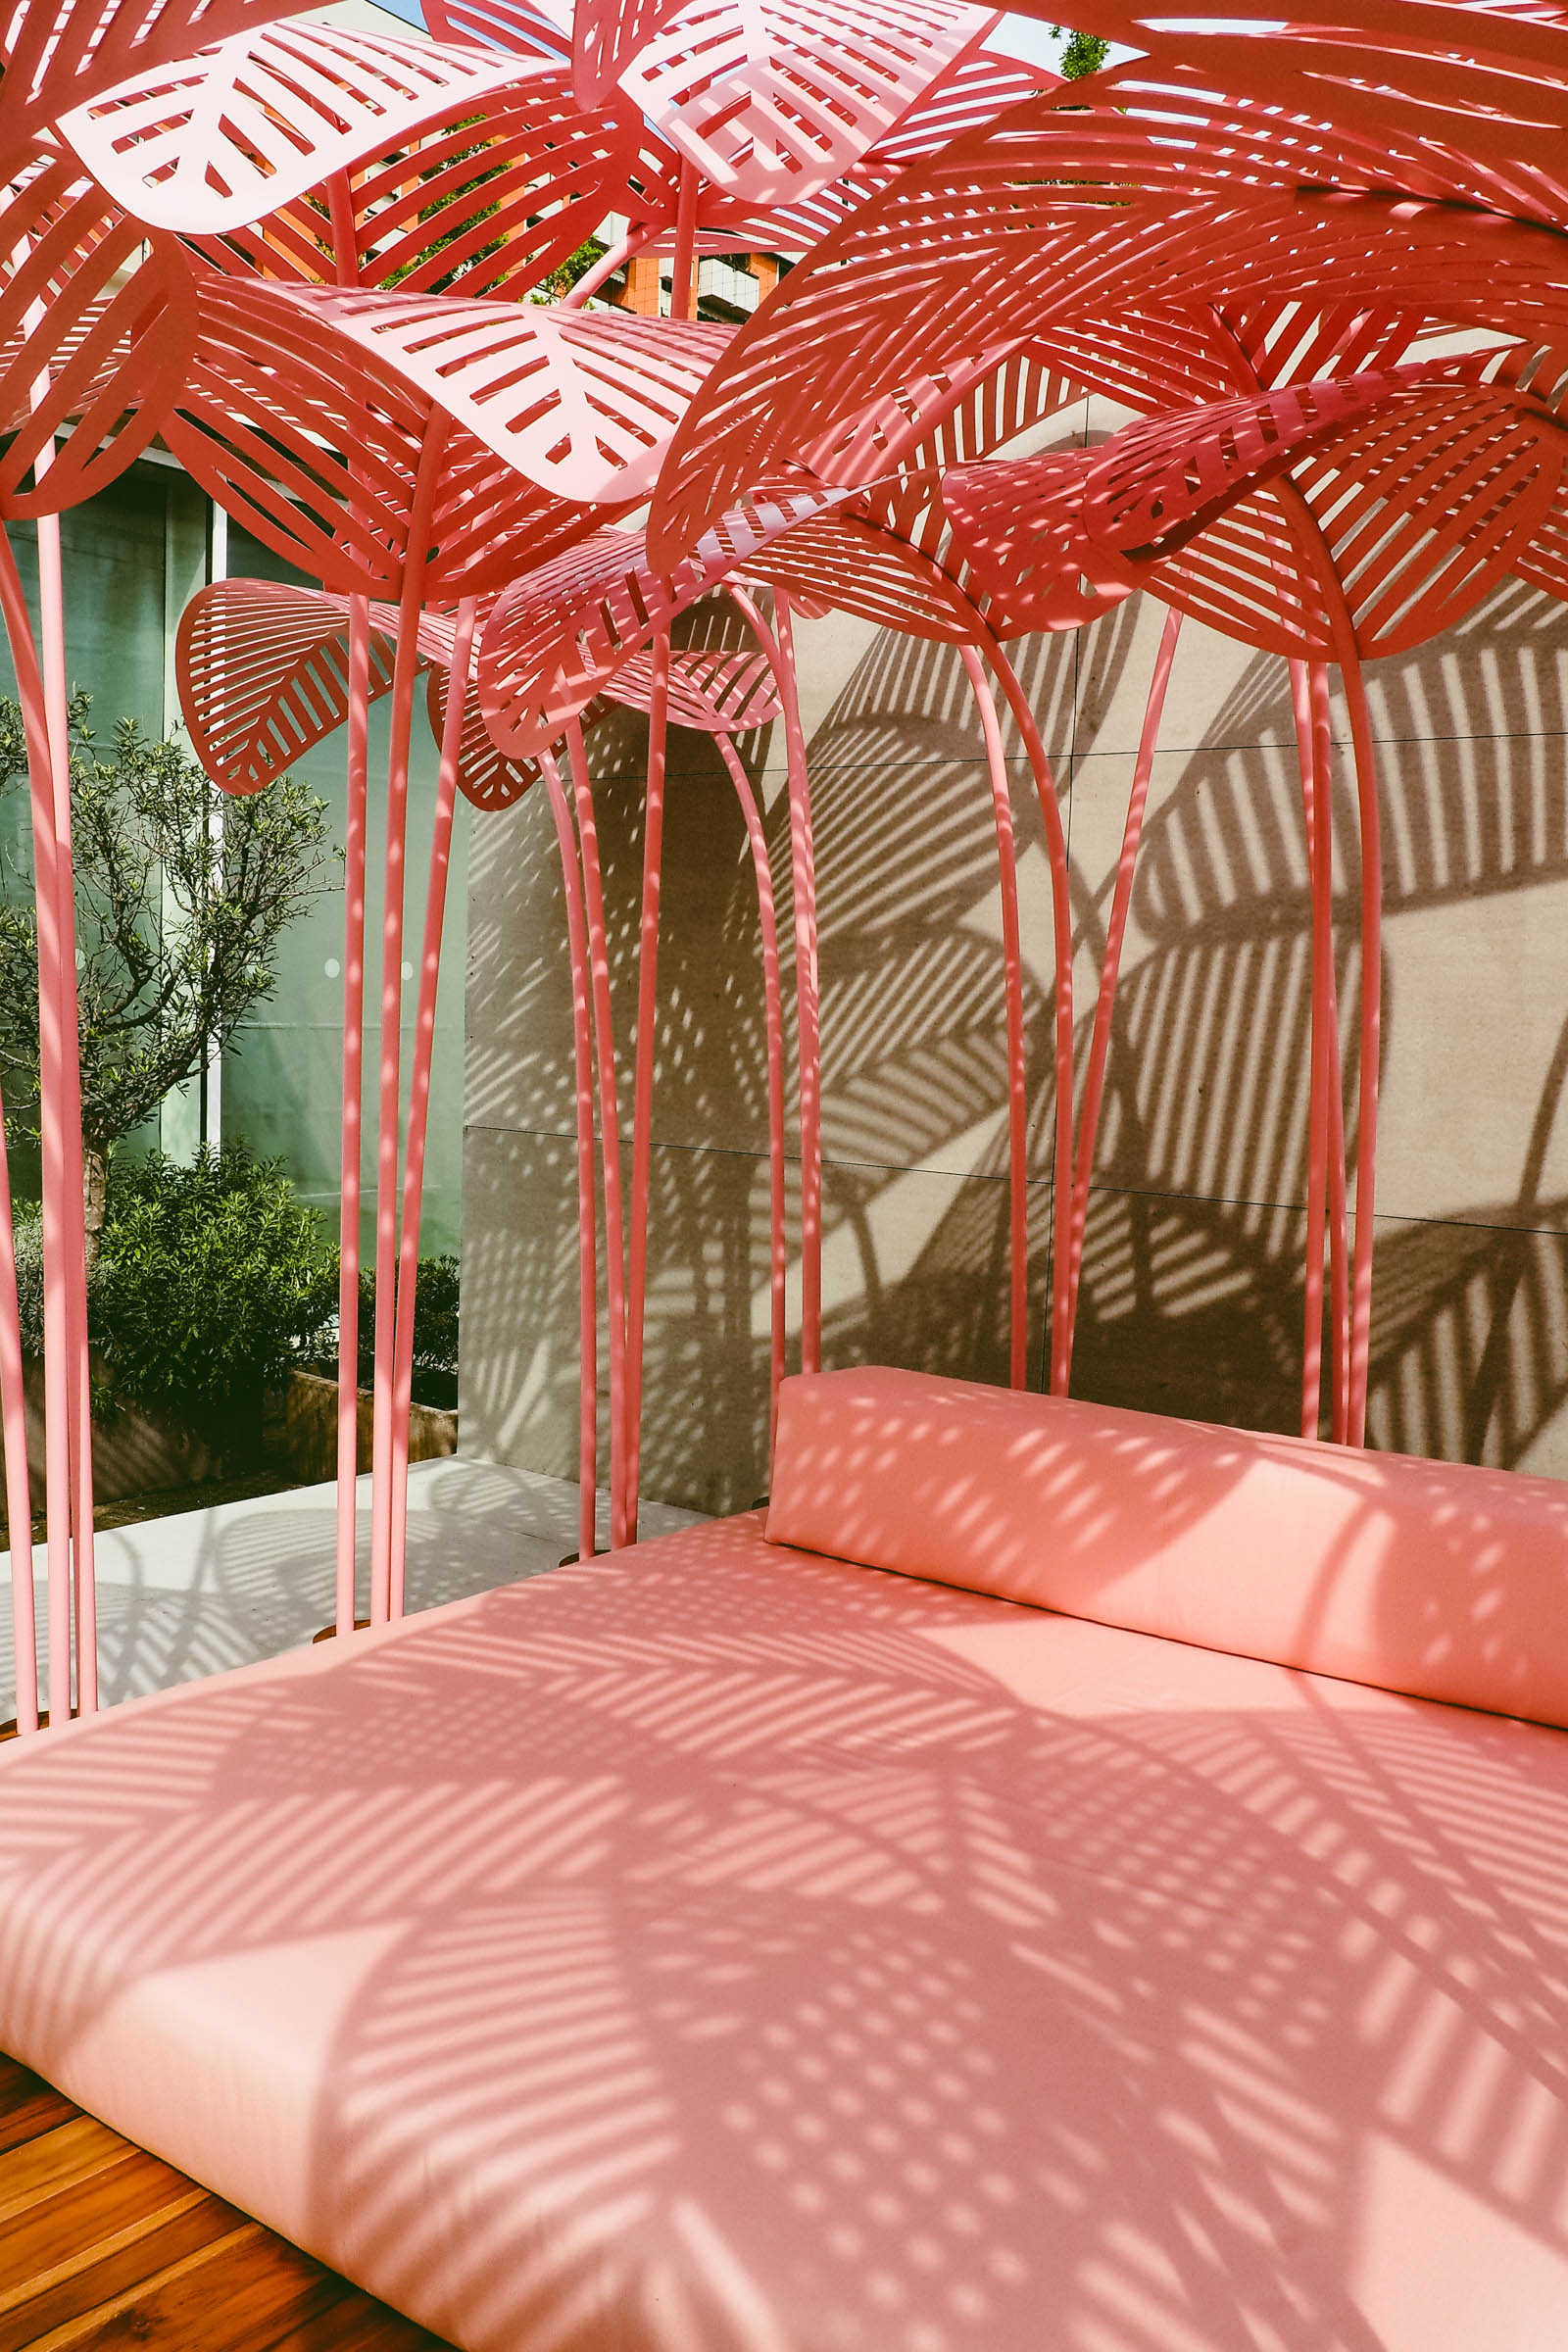 Read all about my first experience of Milan design week - Marc Ange, invisible collection, le refuge